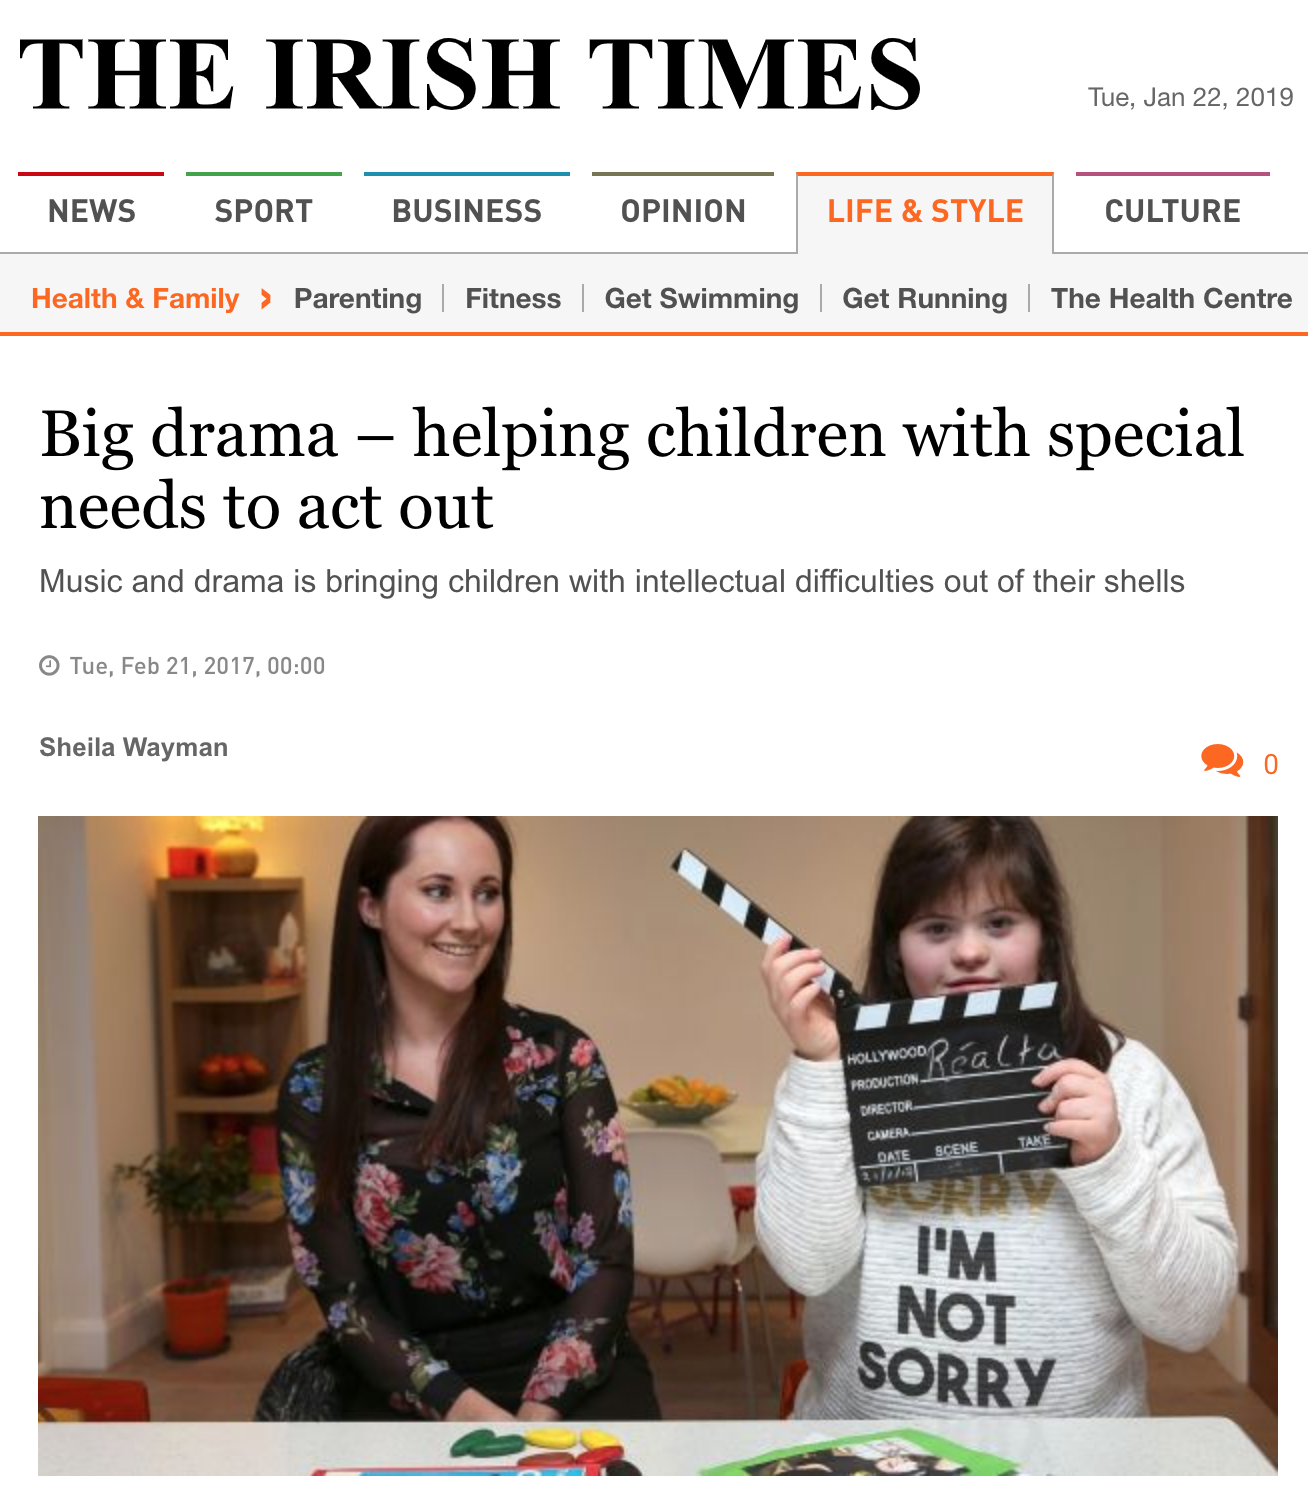 Read the full article in The Irish Times  here